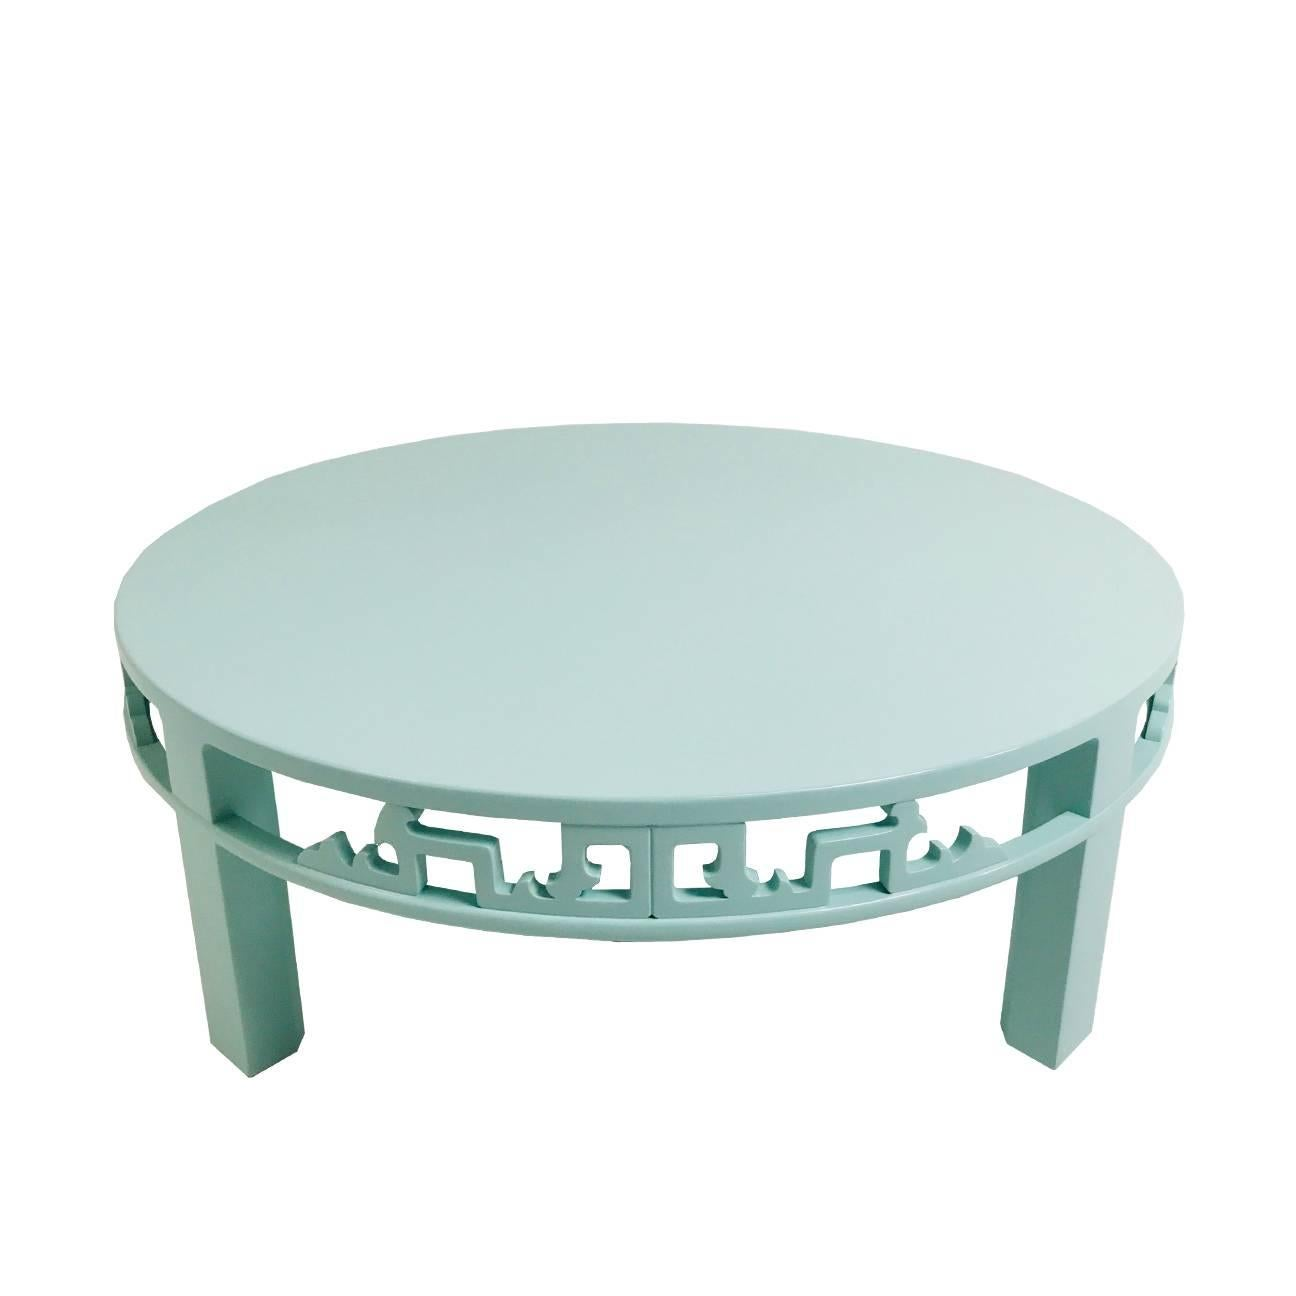 Lacquered Asian Style Coffee Table By Baker For Sale